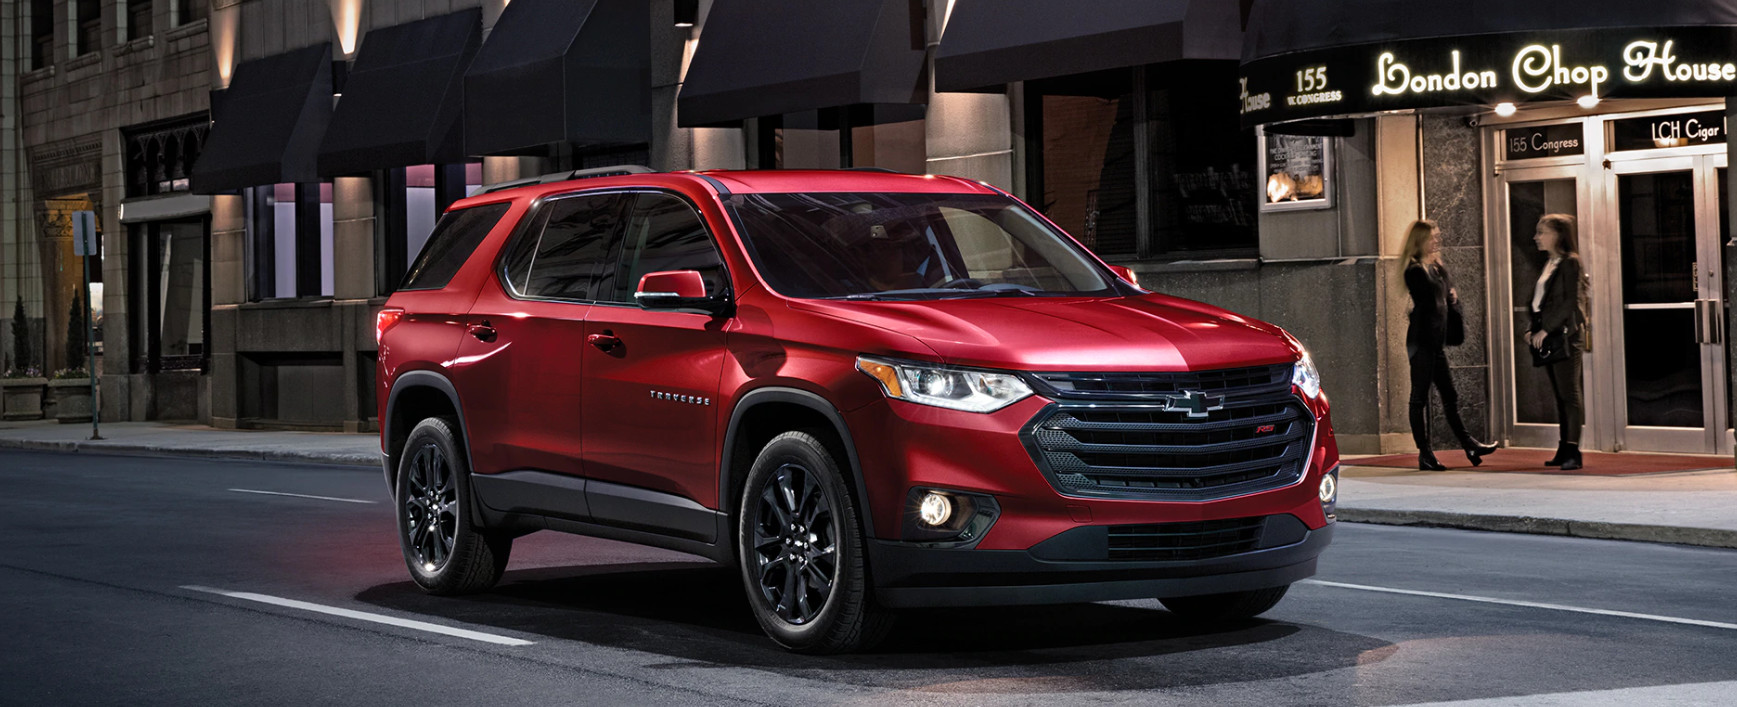 2020 Chevrolet Traverse for Sale near Lansing, MI